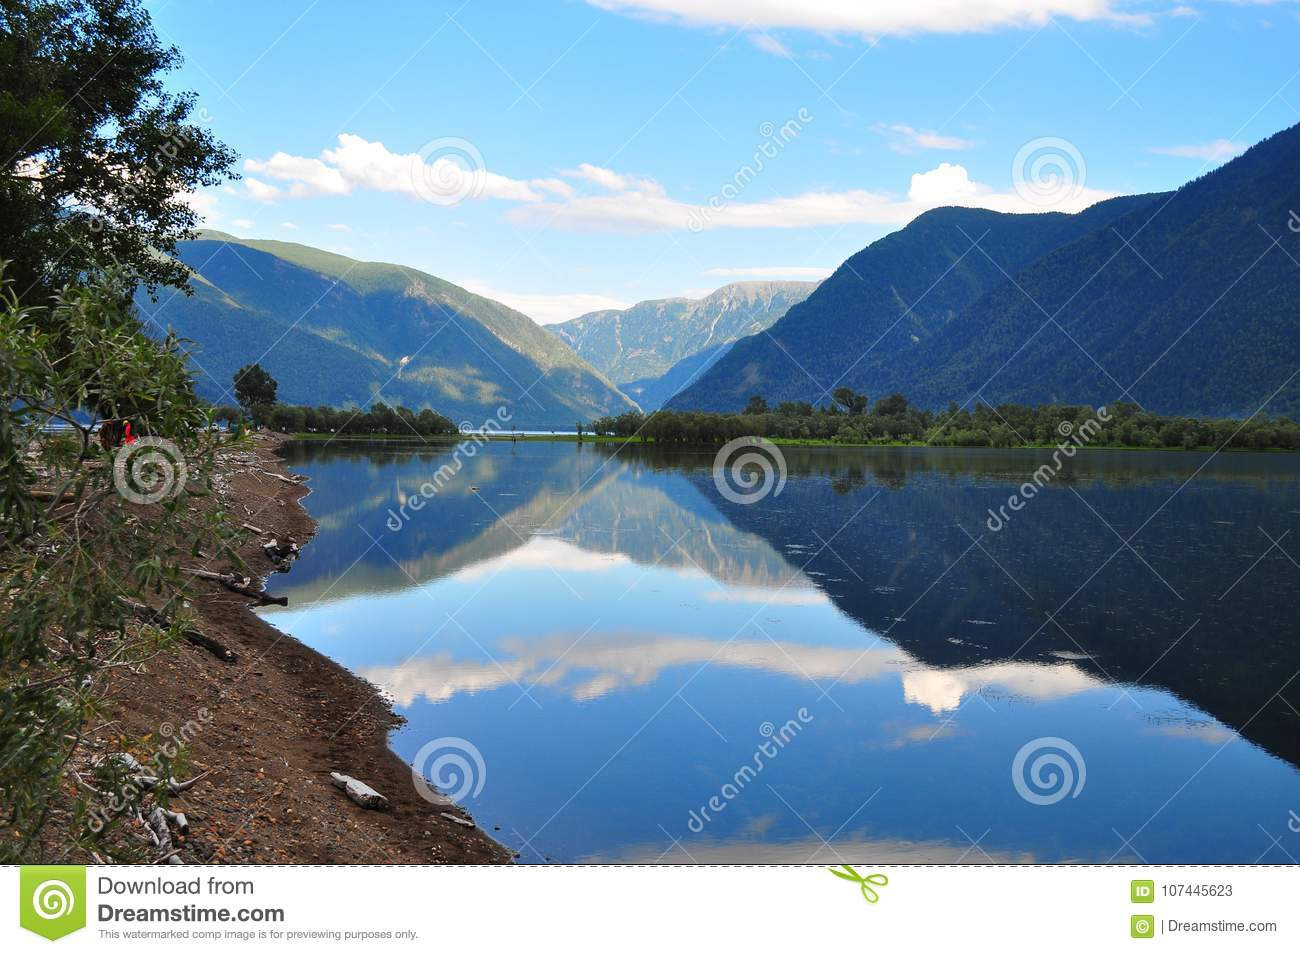 Lake Manzherok, Mountain Altai: photos, recreation centers 71